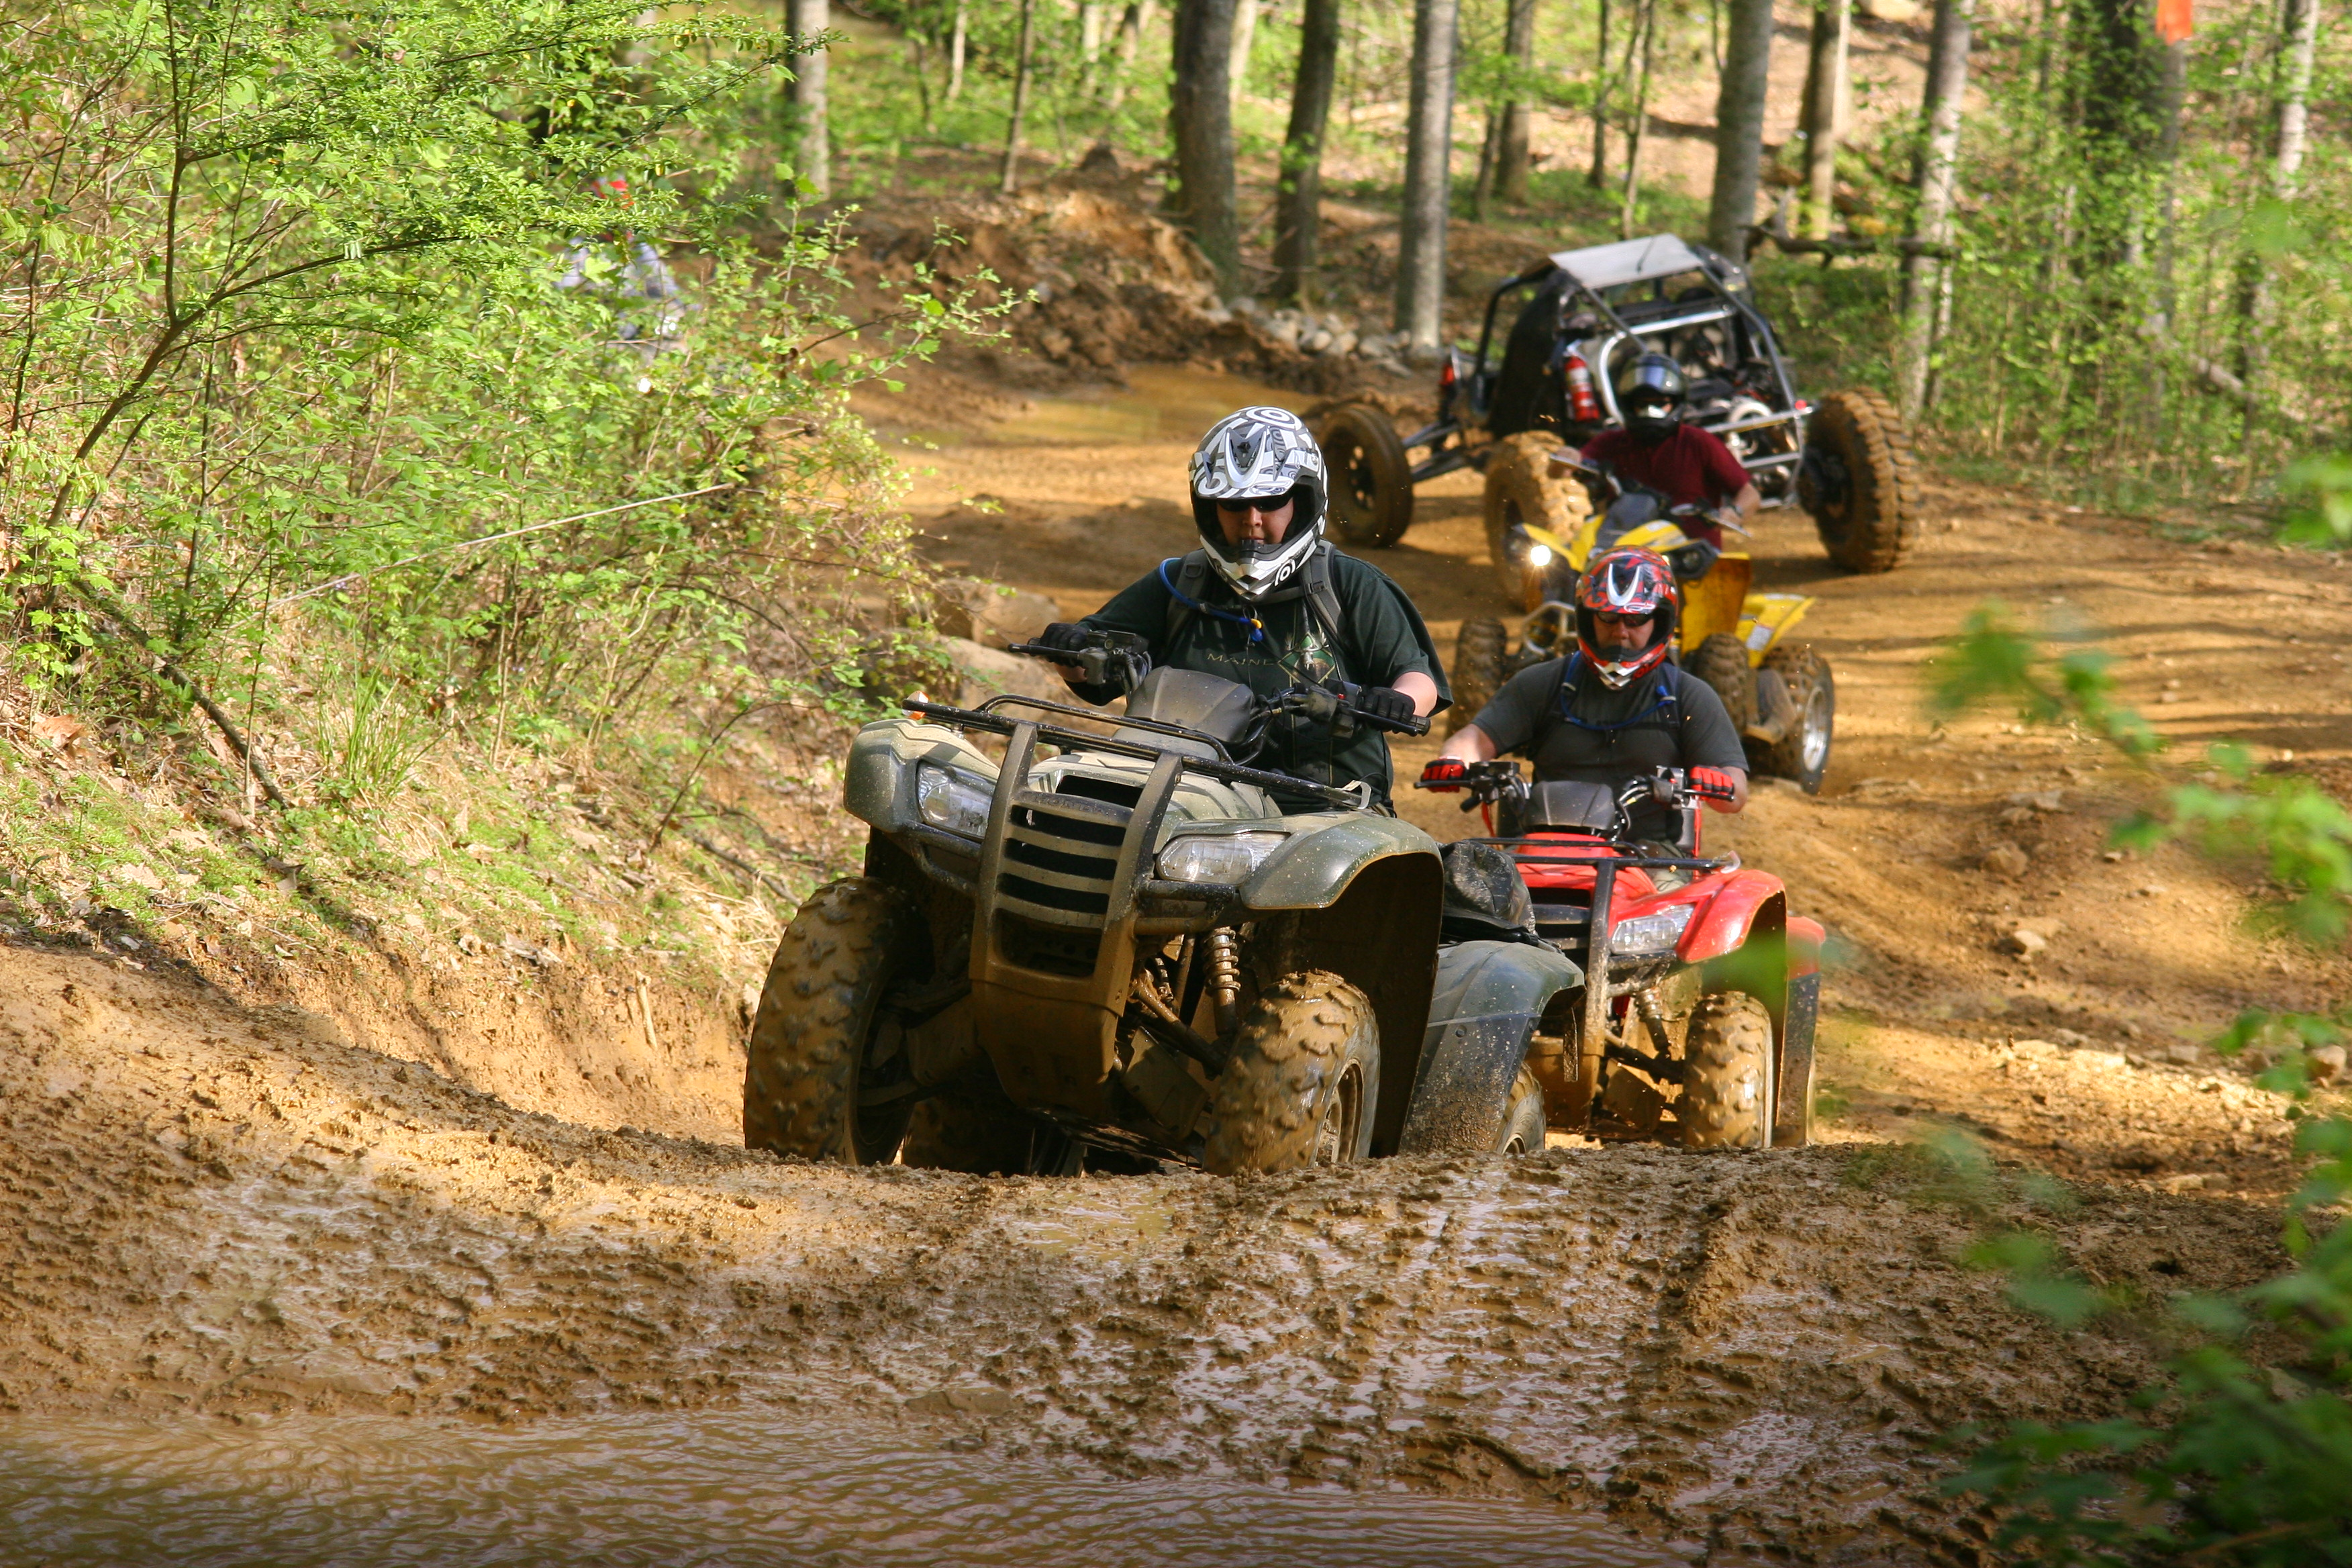 ATVs in windrock park tn